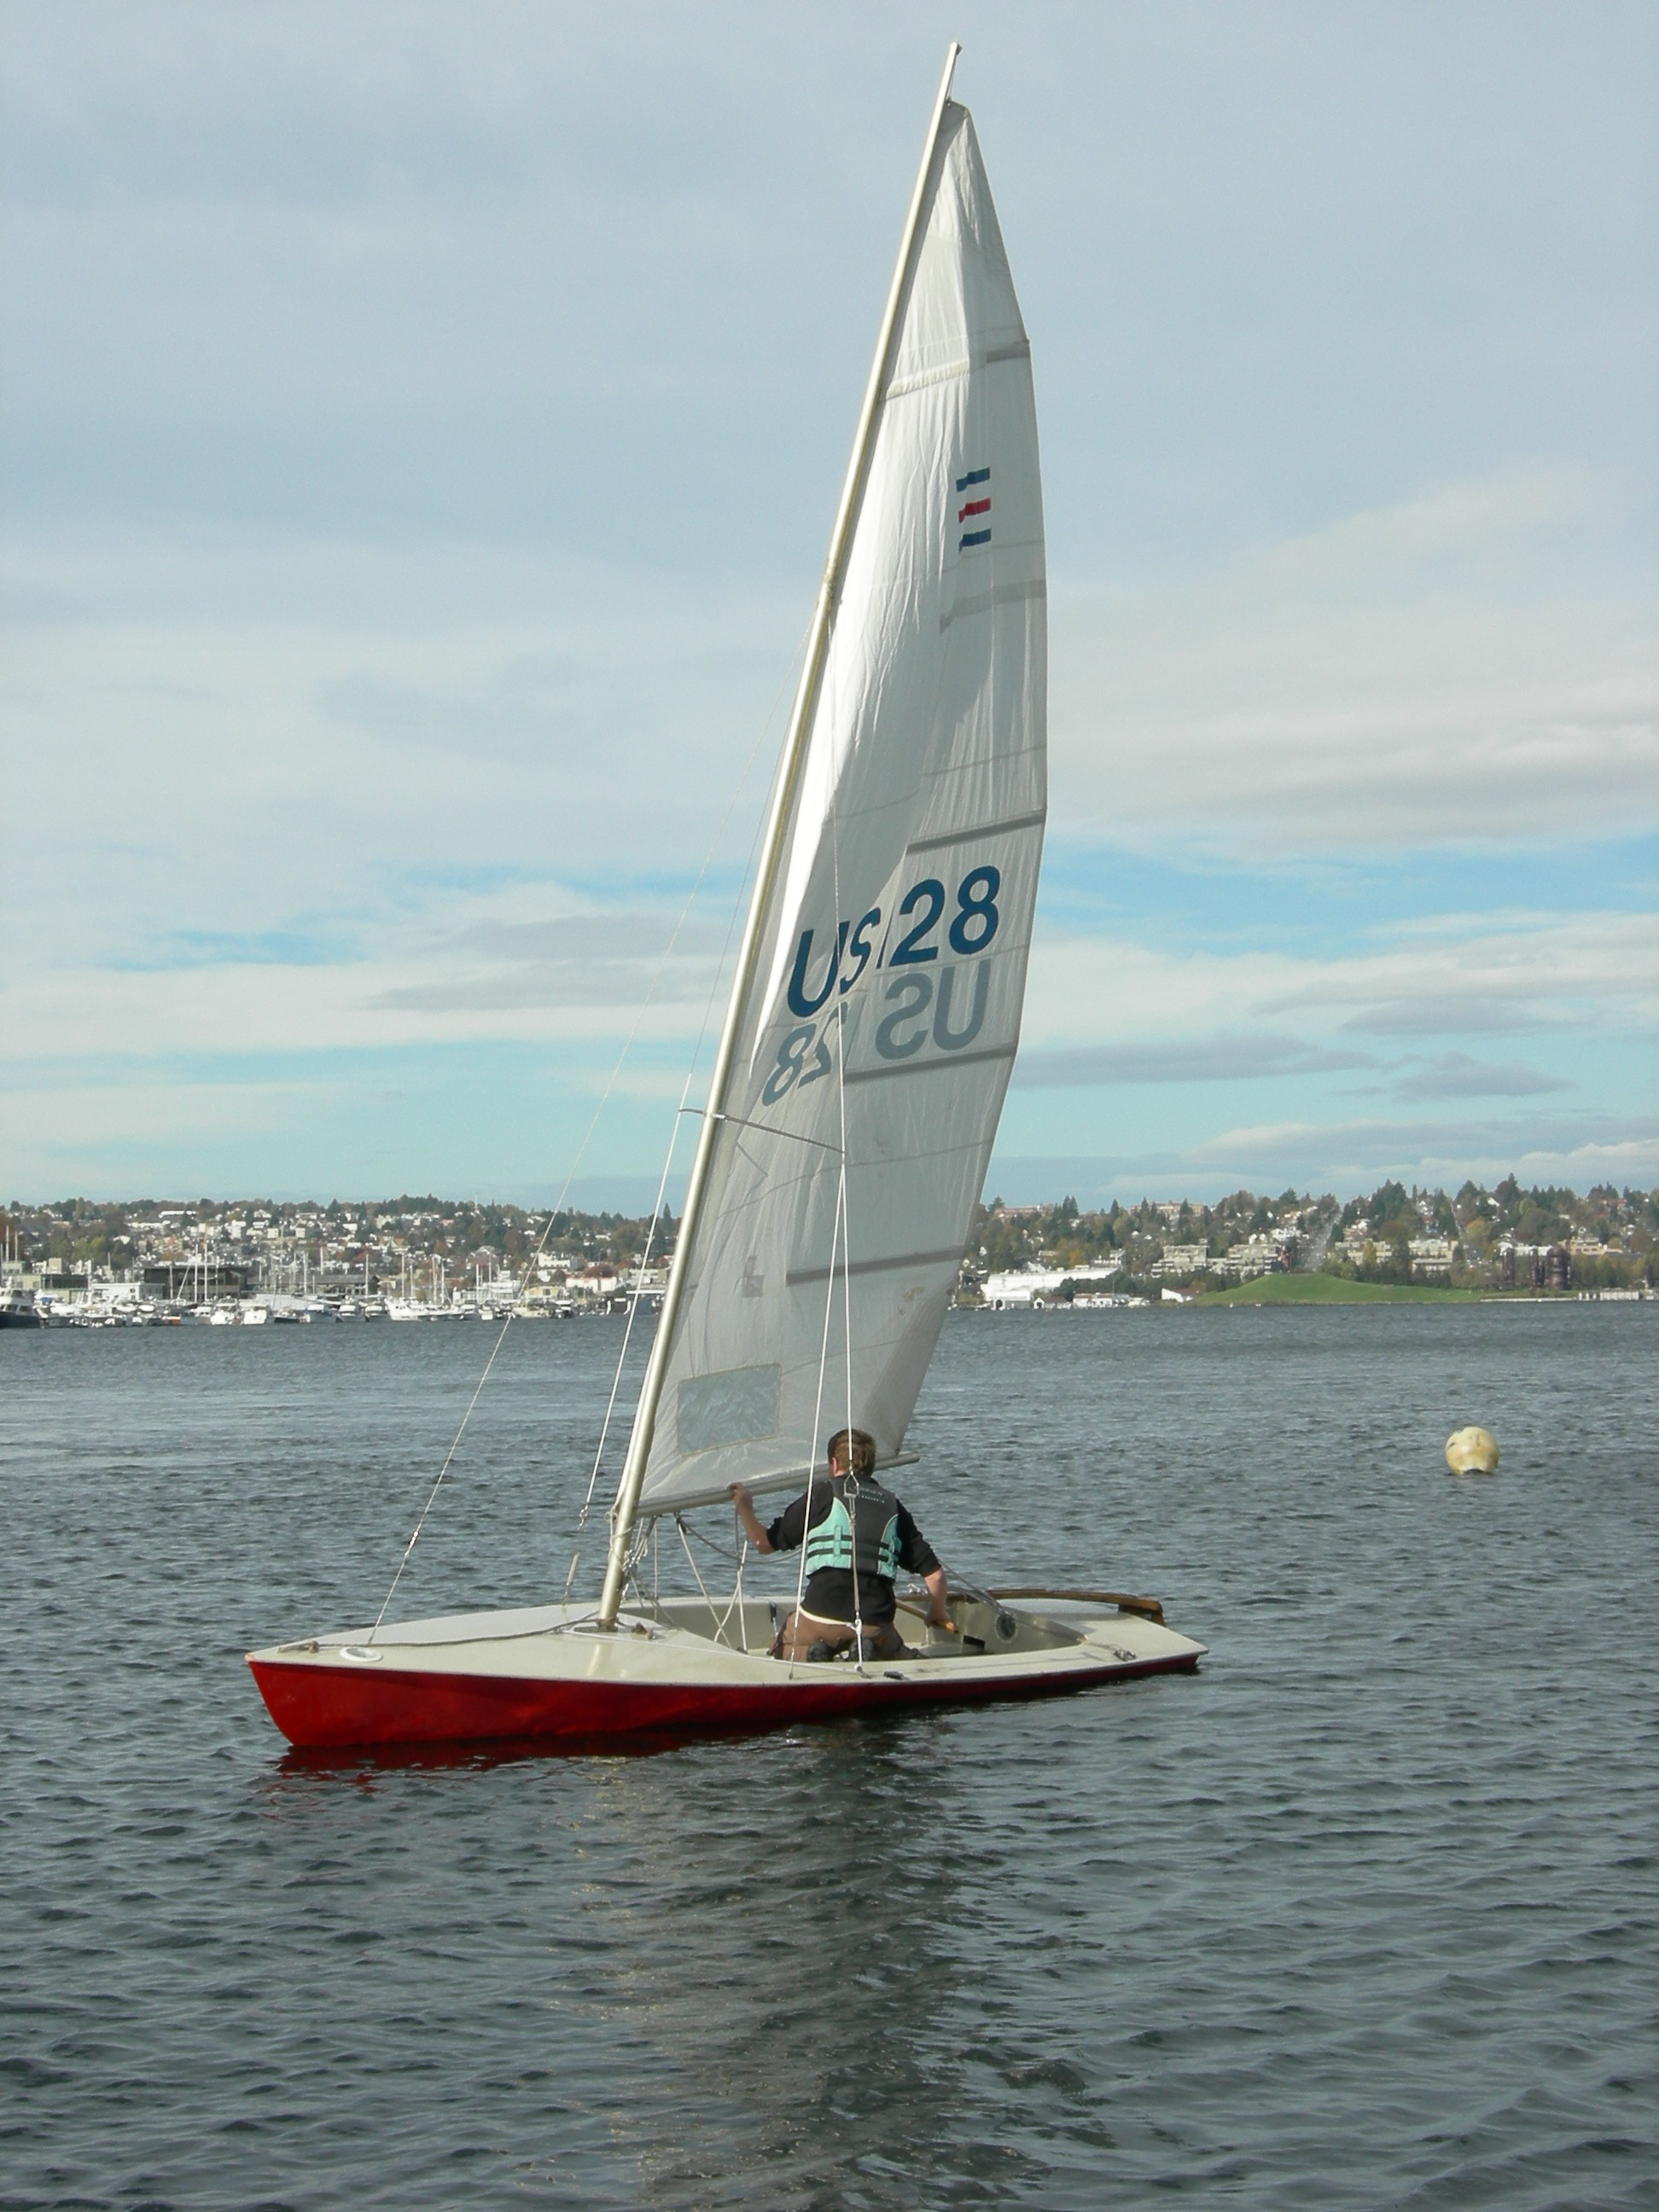 File:Small sailboat on Lake Union 01.jpg - Wikimedia Commons